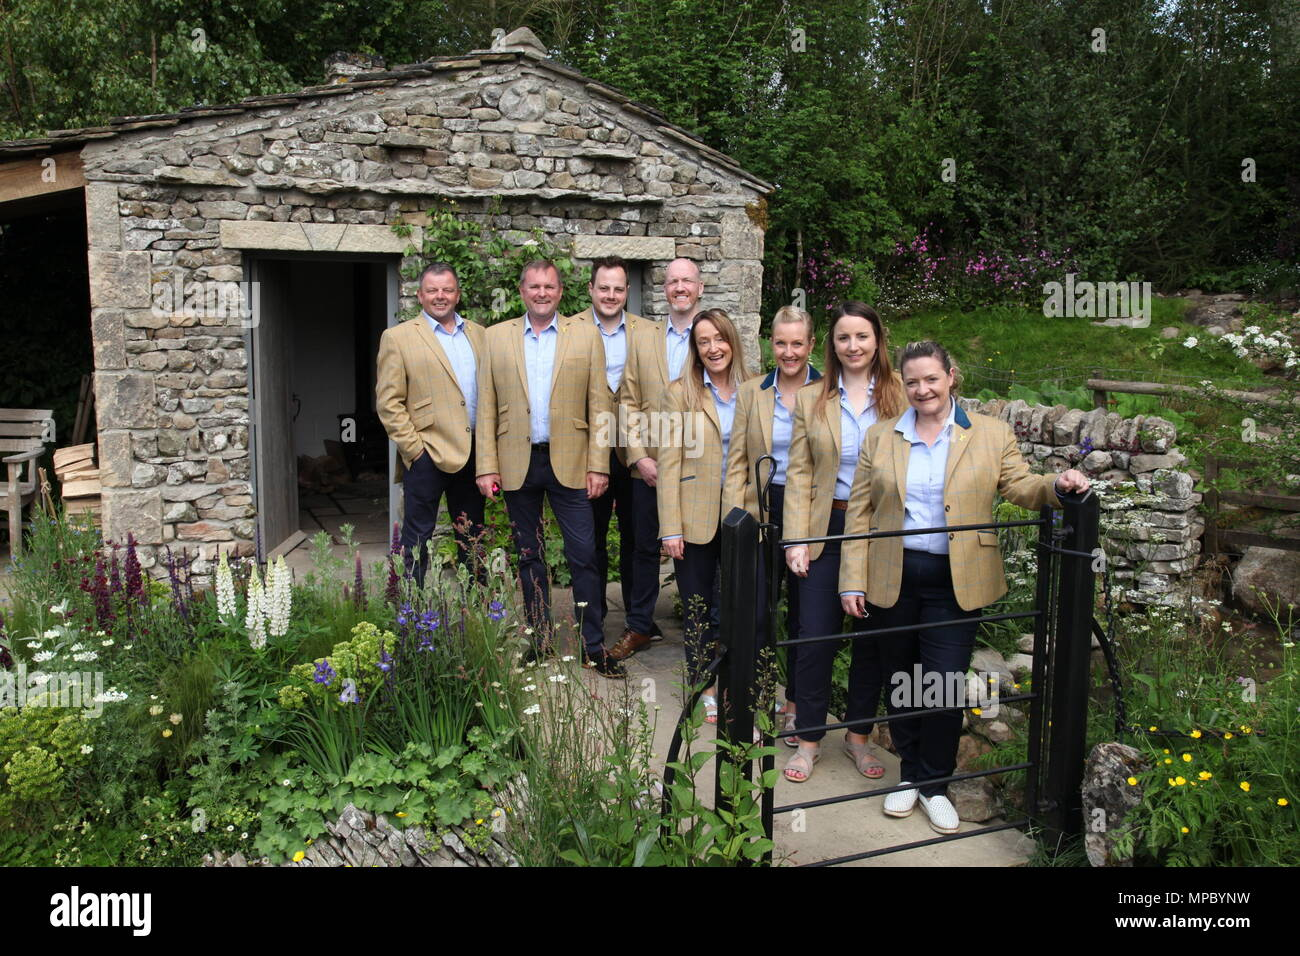 Chelsea, London, UK. 21st May, 2018. The Welcome to Yorkshire team on the Welcome to Yorkshire garden with Sir Gary Verity DL Chief Executive of WTY at Chelsea Flower Show 2018, designed by Mark Gregory for Landformconsultants.co.uk Credit: Jenny Lilly/Alamy Live News - Stock Image